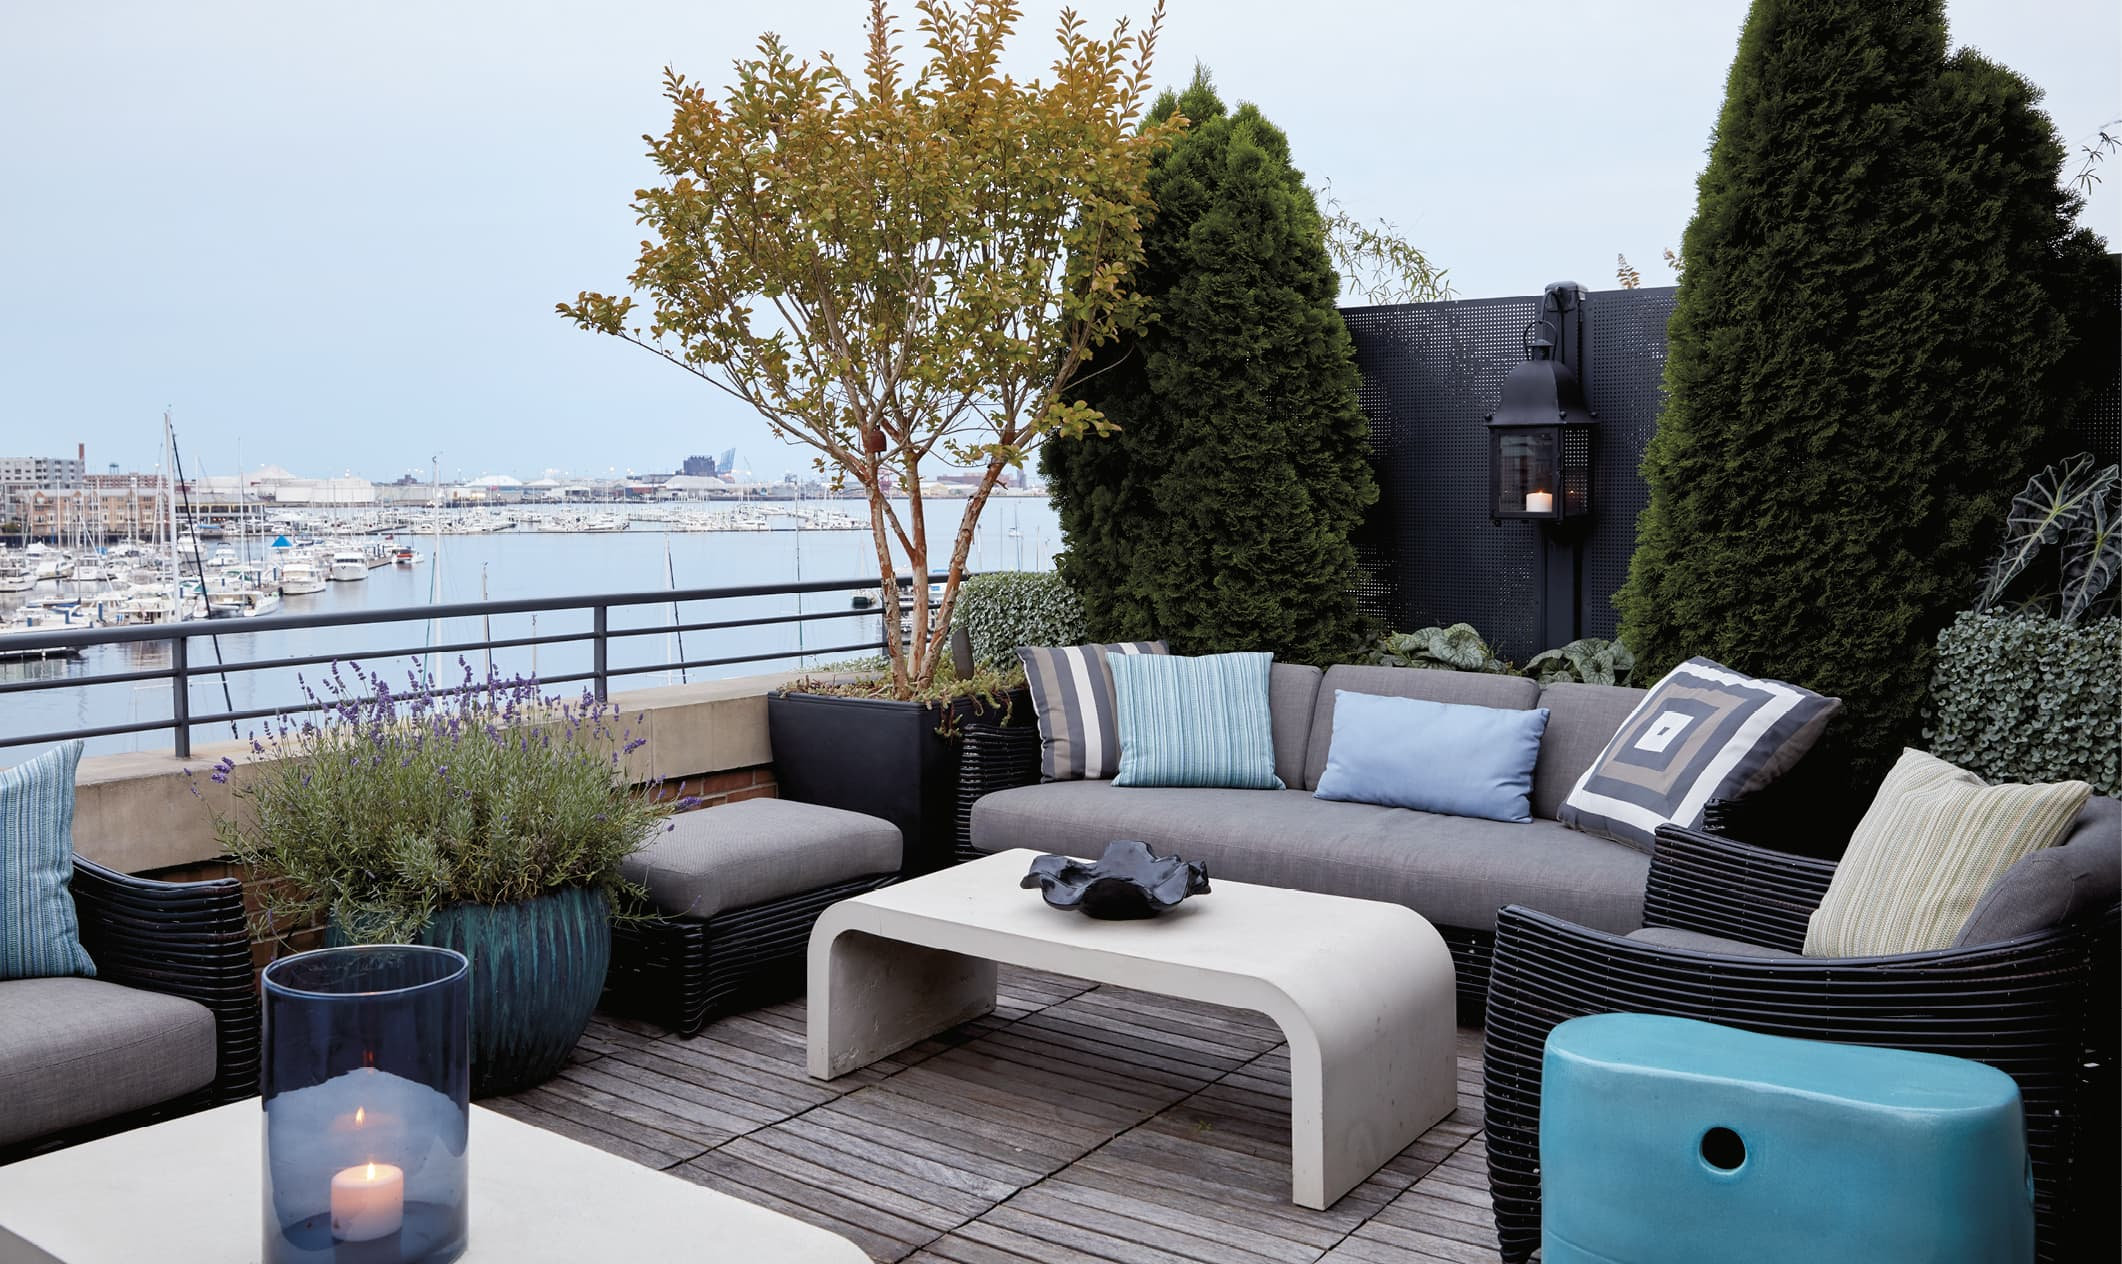 Outdoor porch area that looks out over a harbor